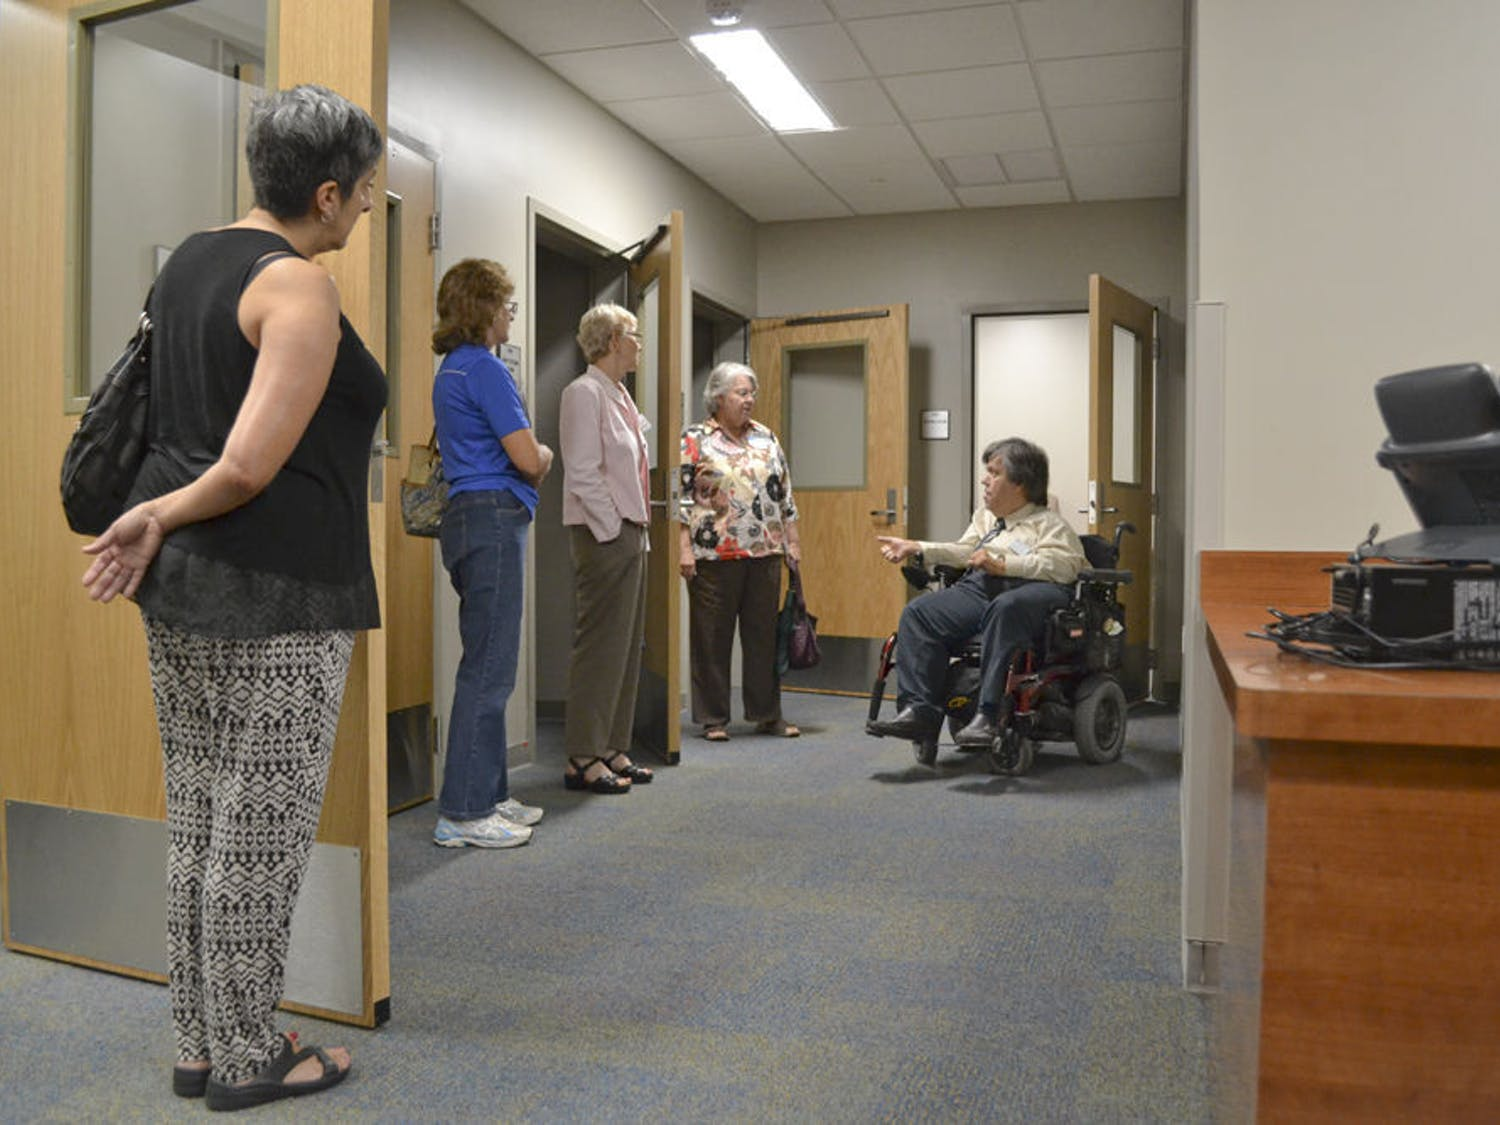 Rick Nelson (right), 57, advisor and educational training specialist at the Disability Resource Center, explains the functions of testing rooms to visitors during the DRC open house event at Cypress Hall Aug. 26, 2015.